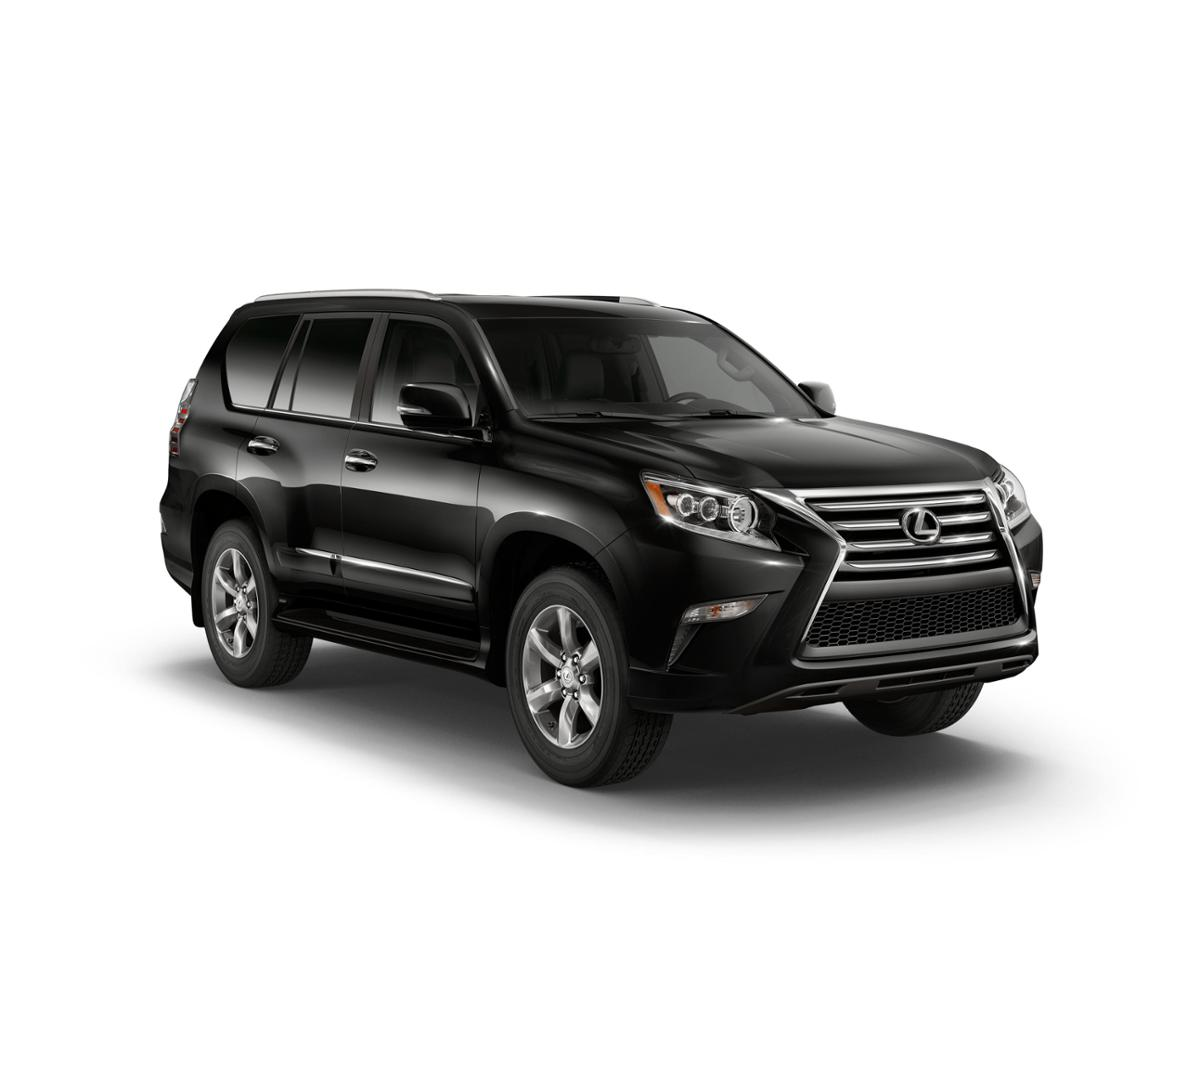 2019 Lexus GX 460 Vehicle Photo in Sacramento, CA 95821